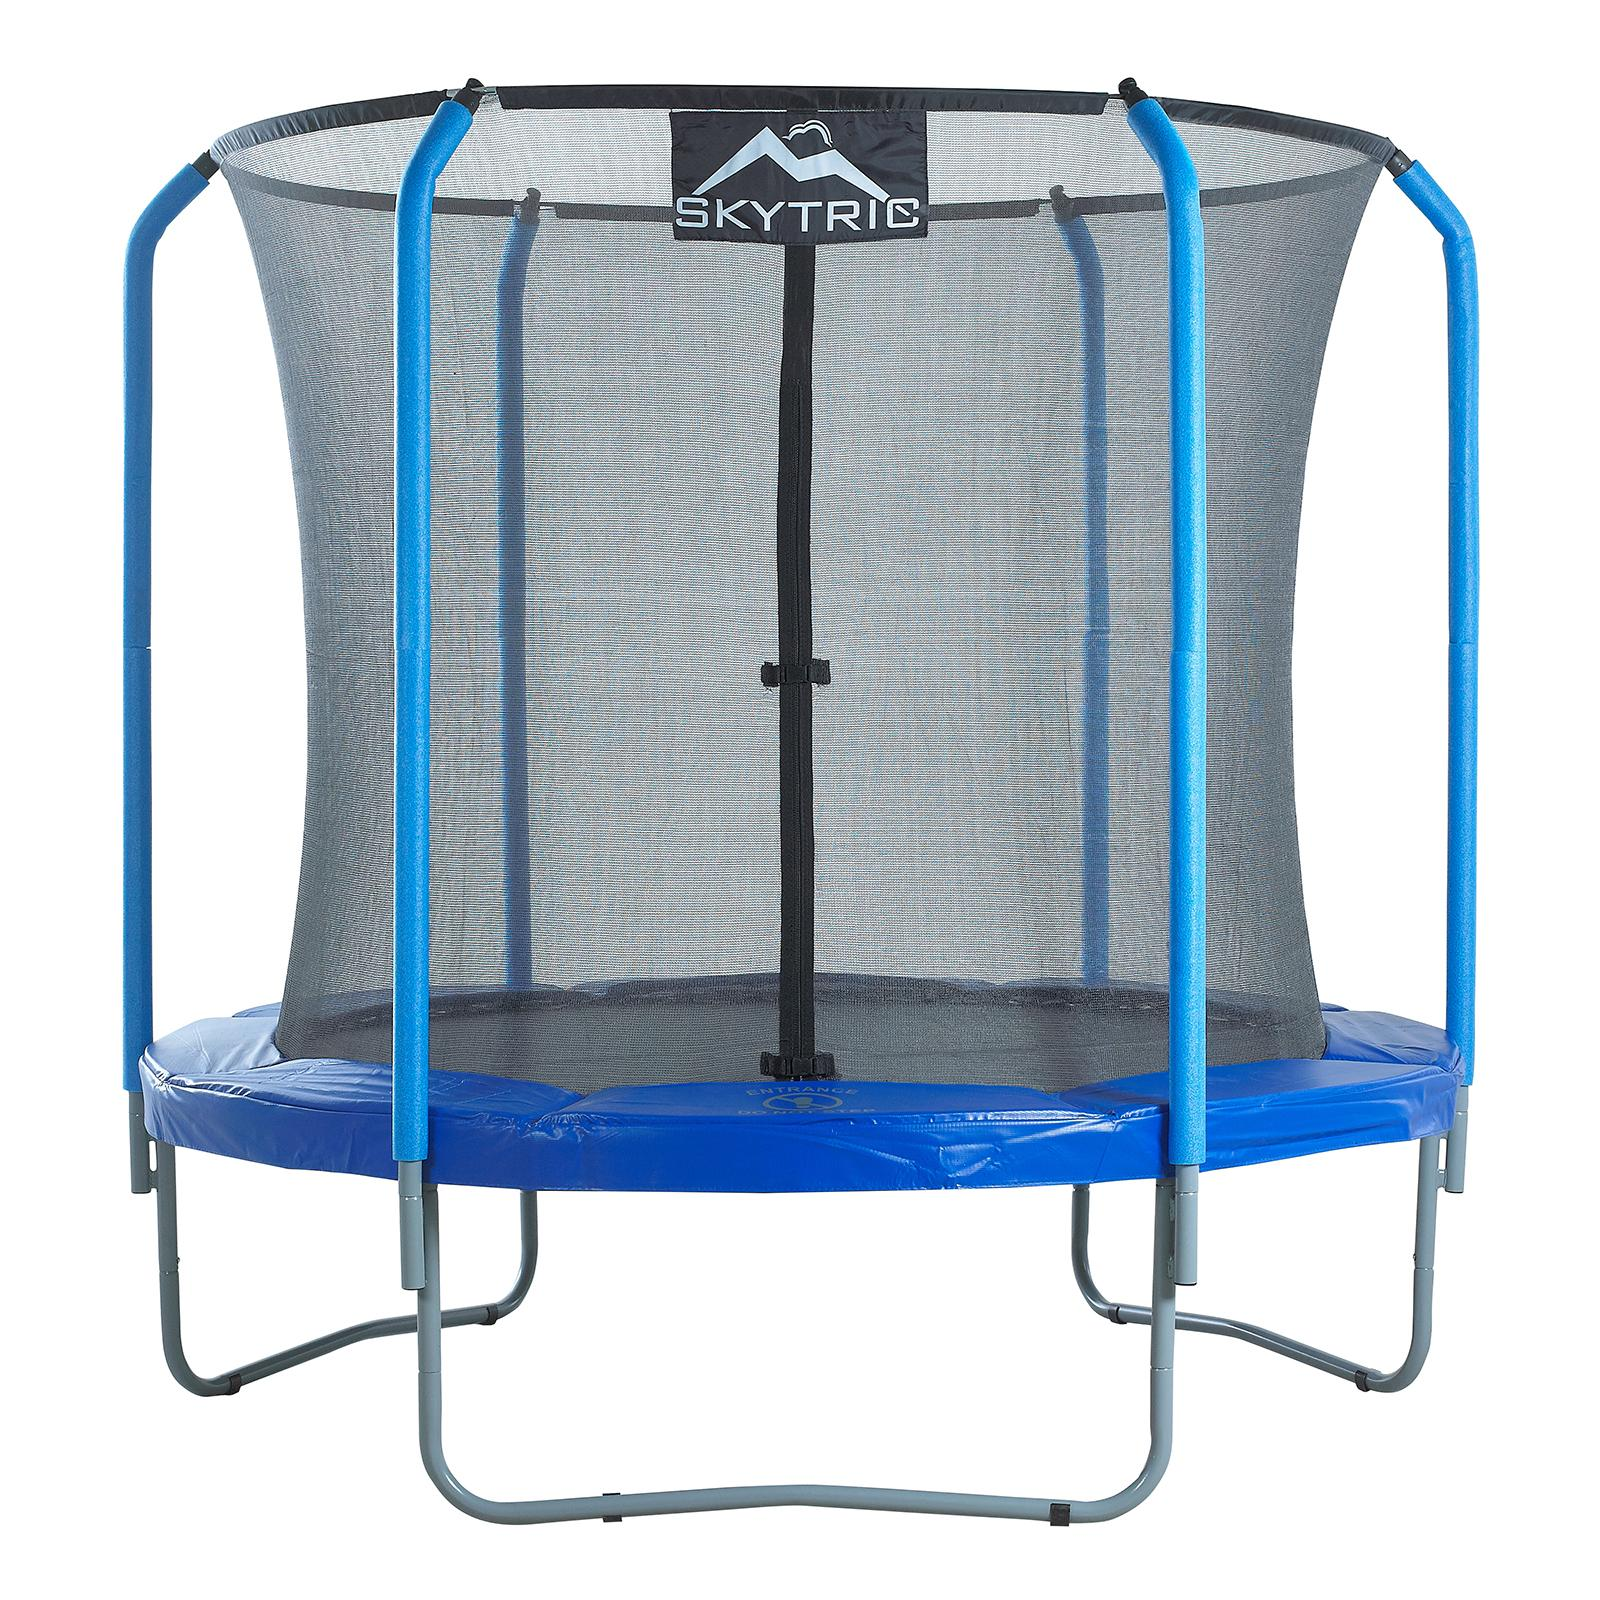 Upper Bounce 8 ft. Trampoline with Top Ring Enclosure - UBSF02-8